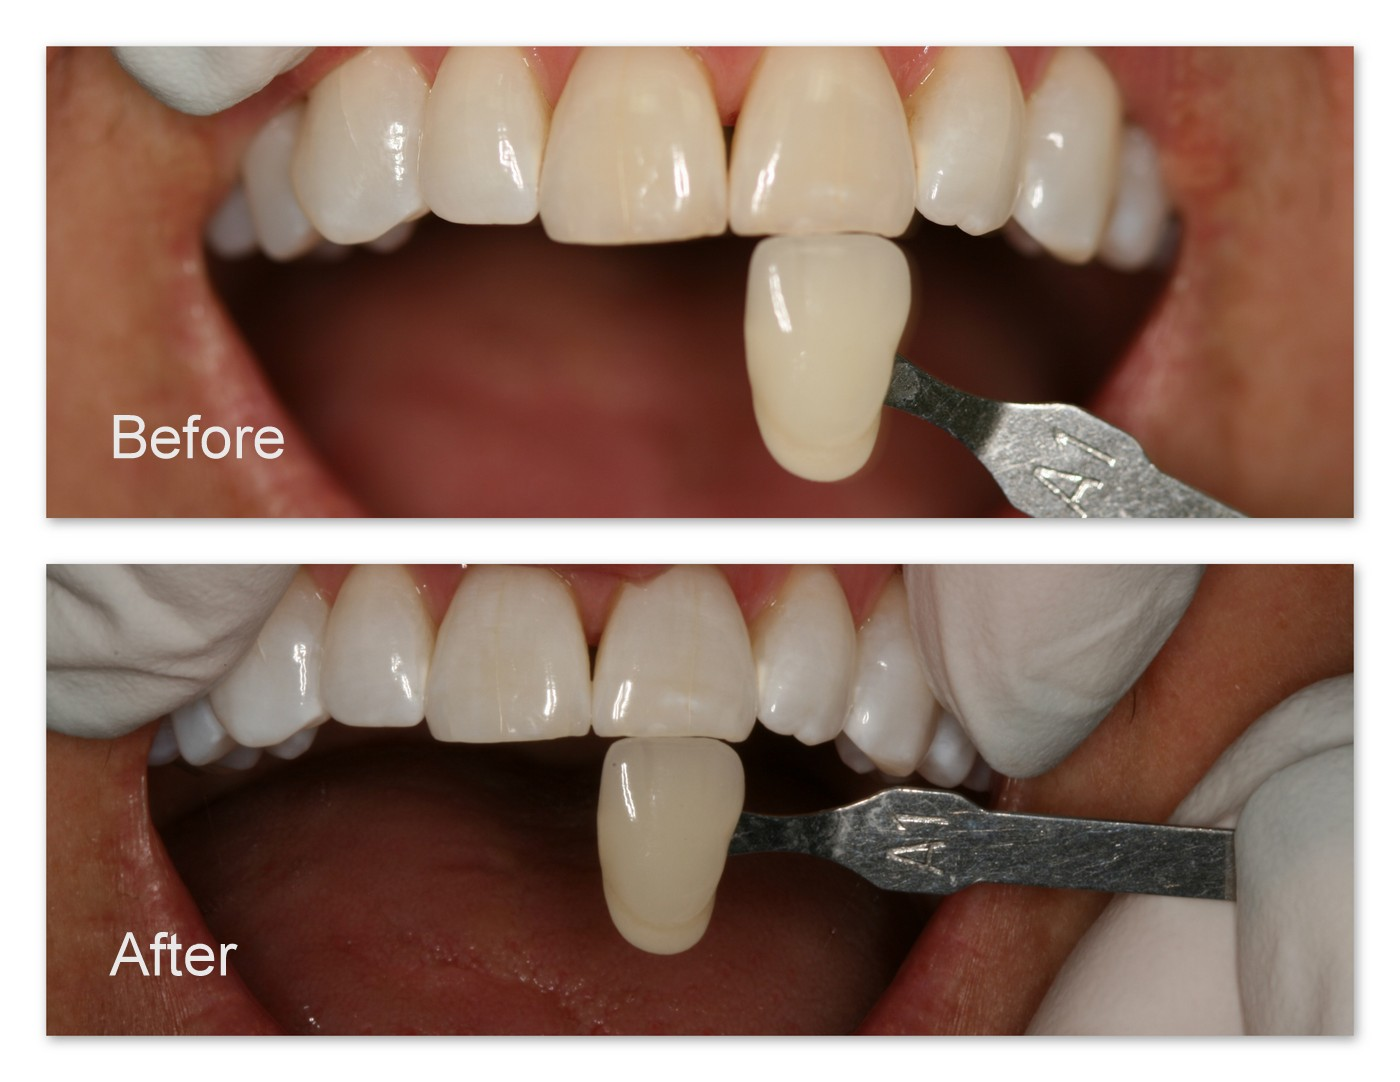 Before- Before Whitening. After- After Tooth Whitening. Notice the difference in the color of the teeth now and the shade tab.